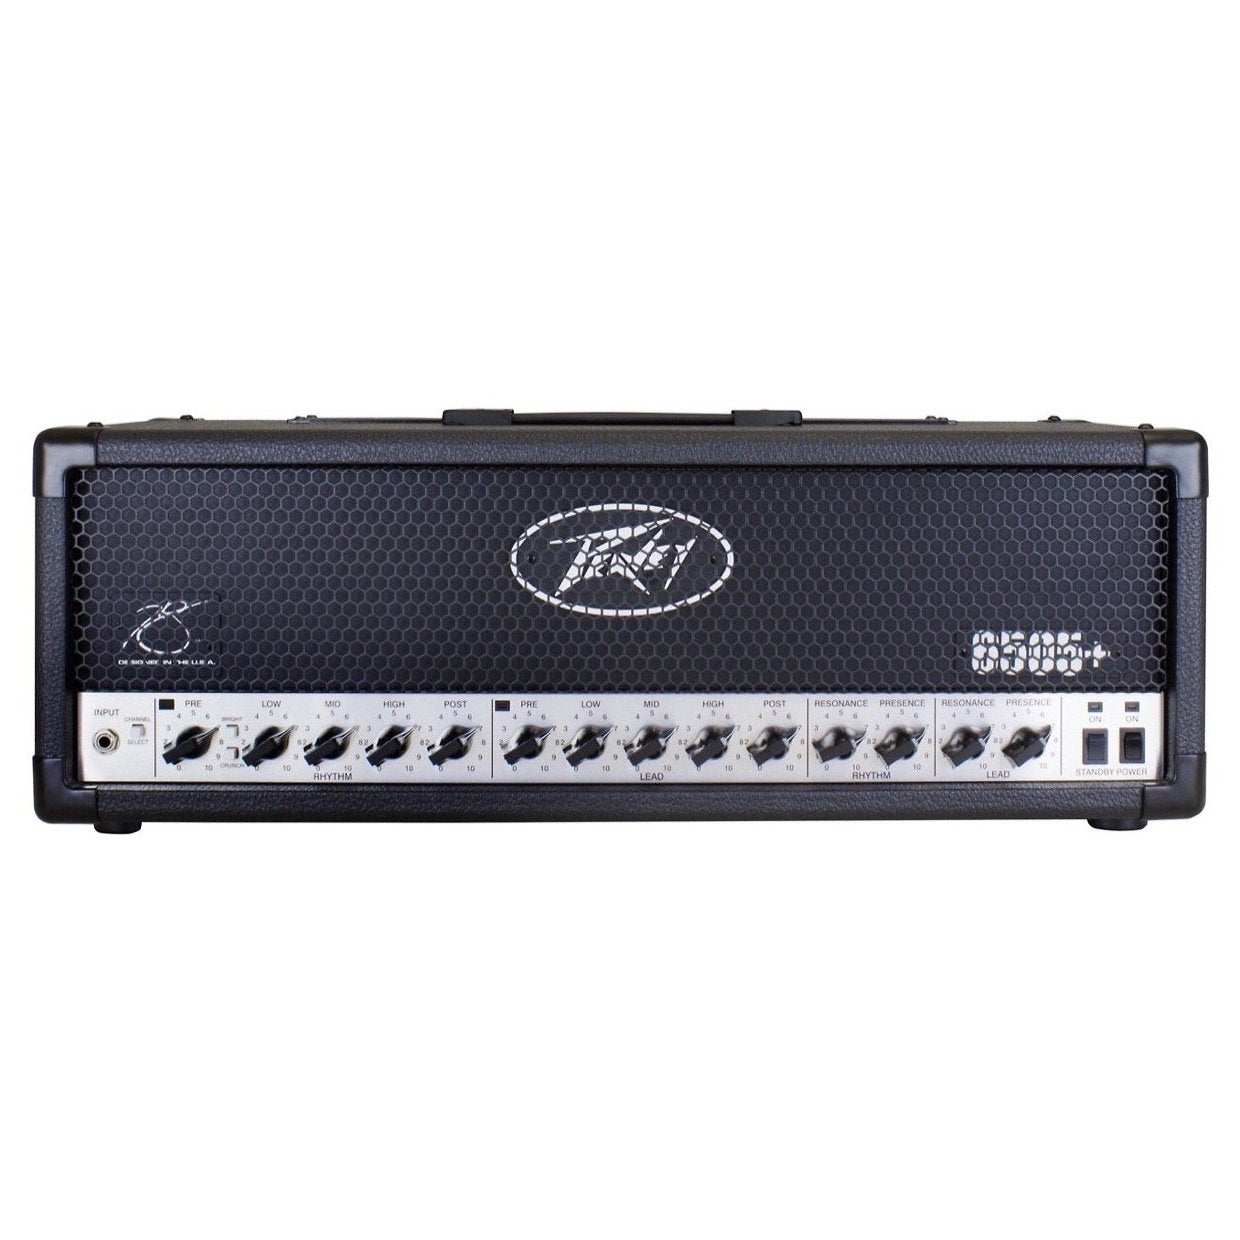 Peavey 6505 Plus Guitar Amplifier Head (120 Watts)